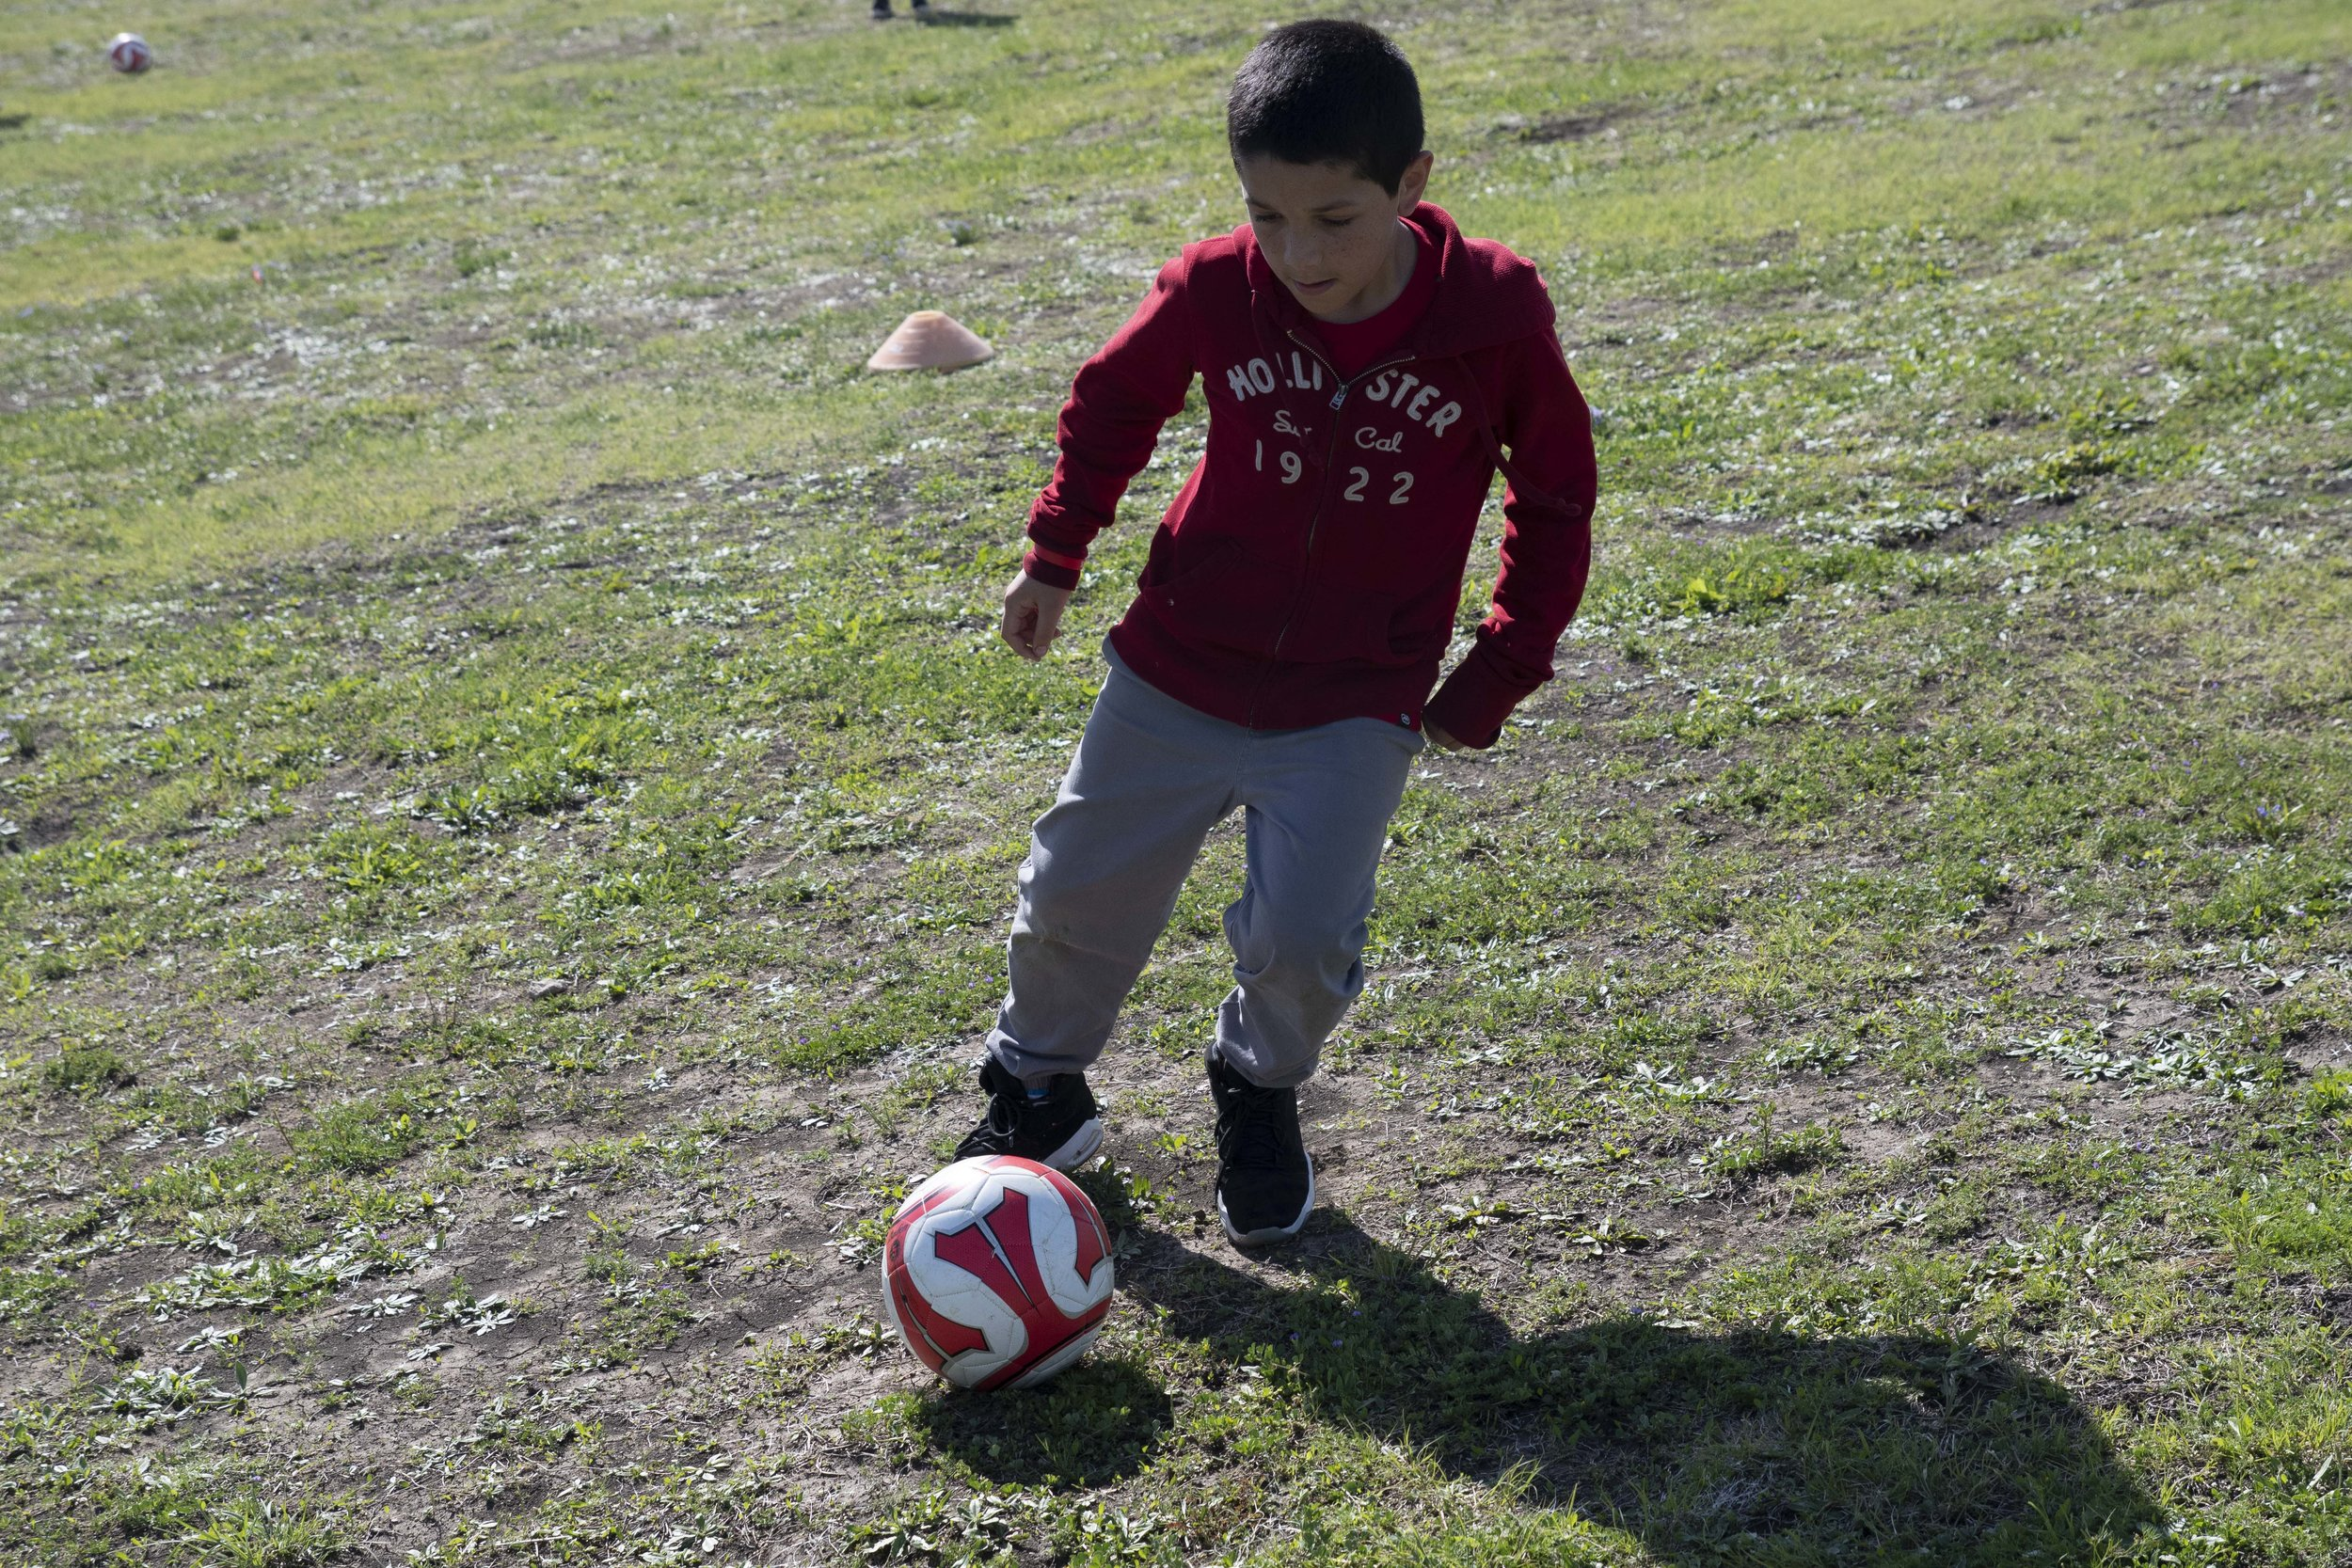 Kicks for Kids 04152019 3star 002.jpg